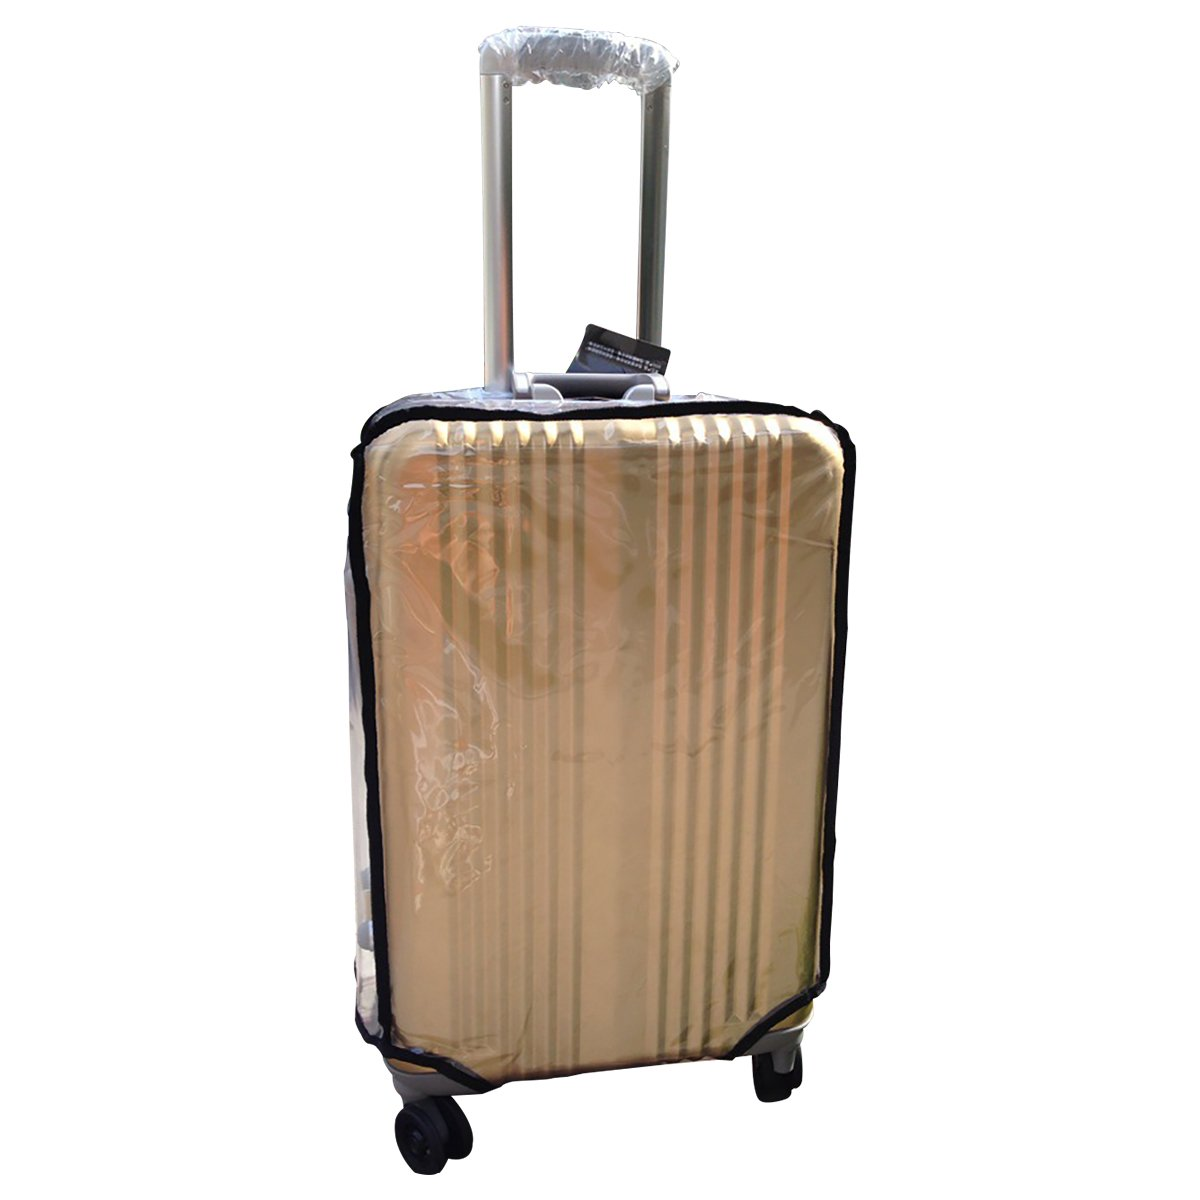 Clear Luggage Cover Protector, Cover for Travel Luggage (Zipper Style 30'')